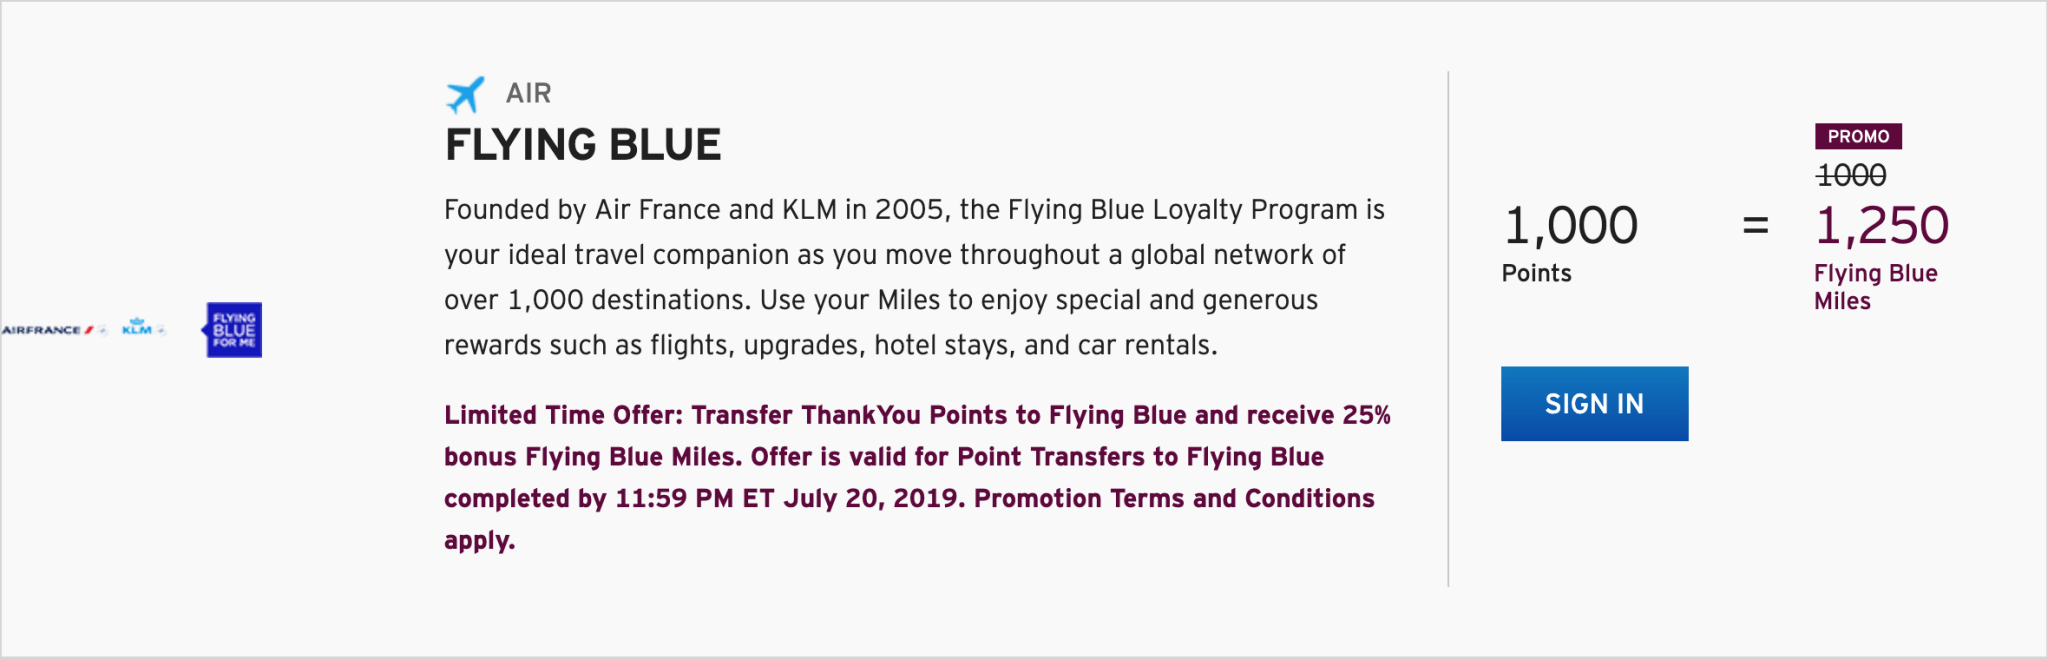 Receive a 25% bonus through July 20th when you transfer Citi ThankYou points to Air France FlyingBlue. (Image via Citi)